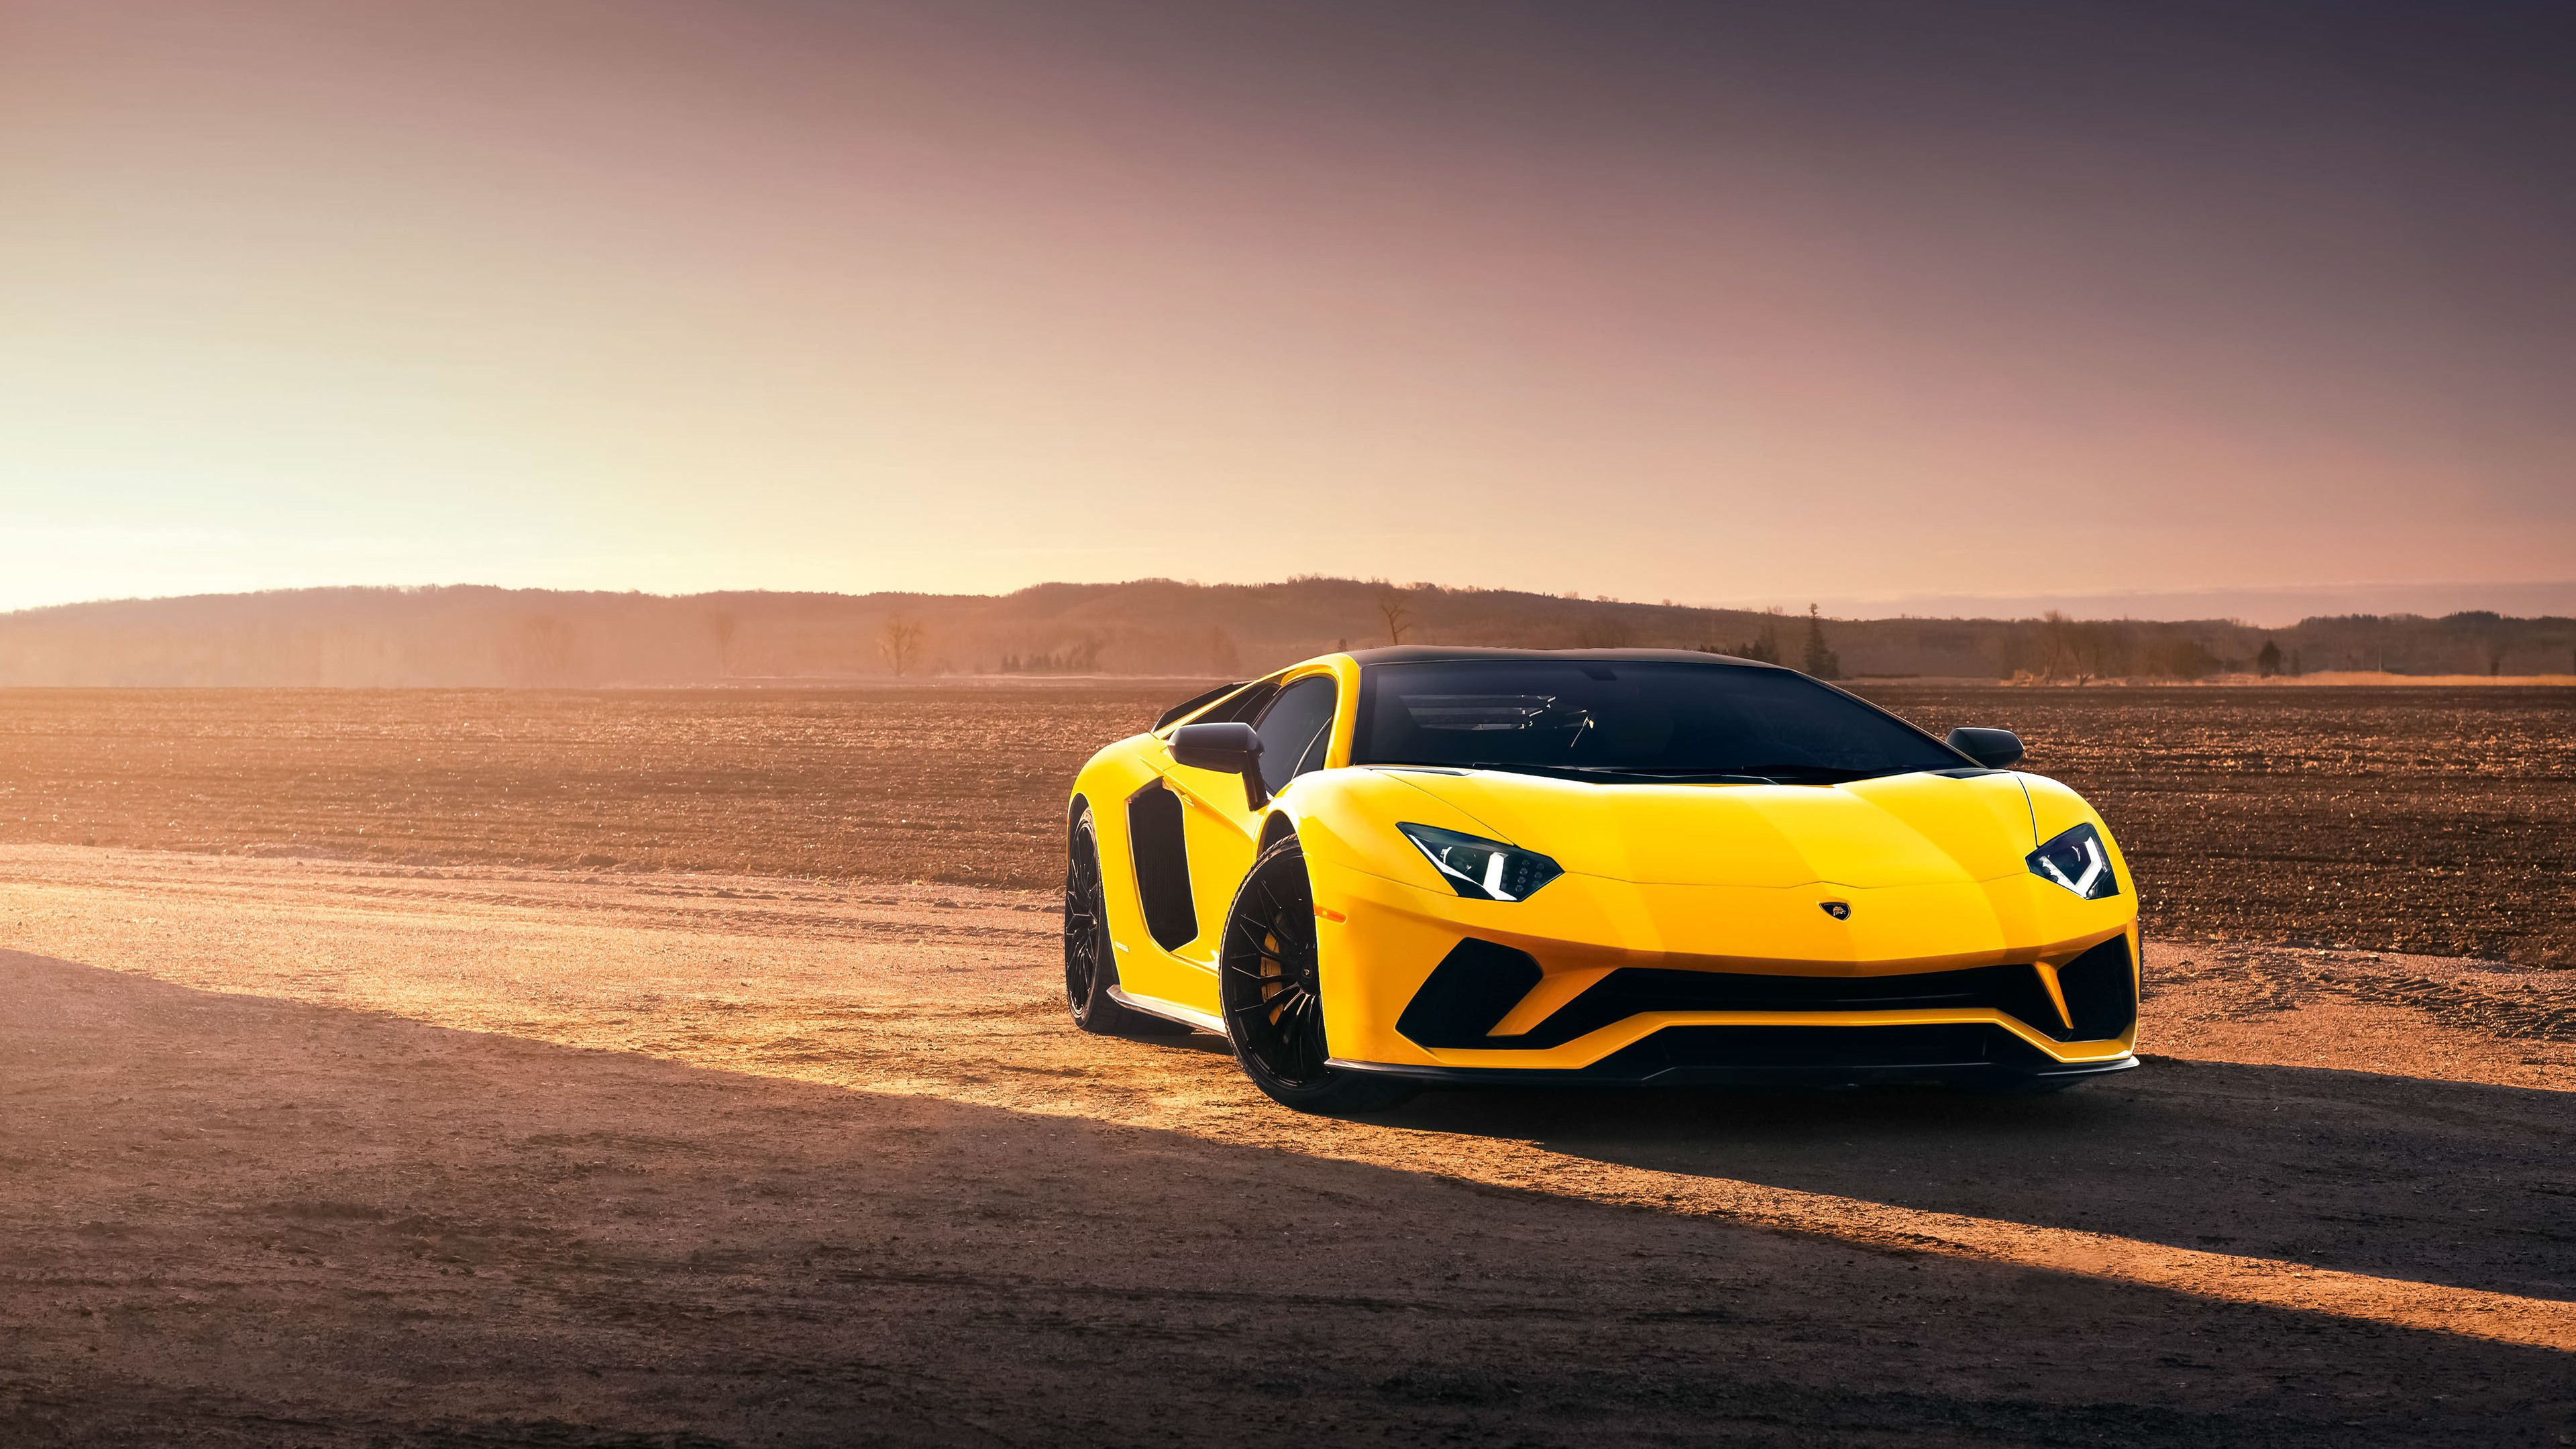 2018 Lamborghini Aventador S 4k wallpaper lamborghini wallpapers 3840x2160